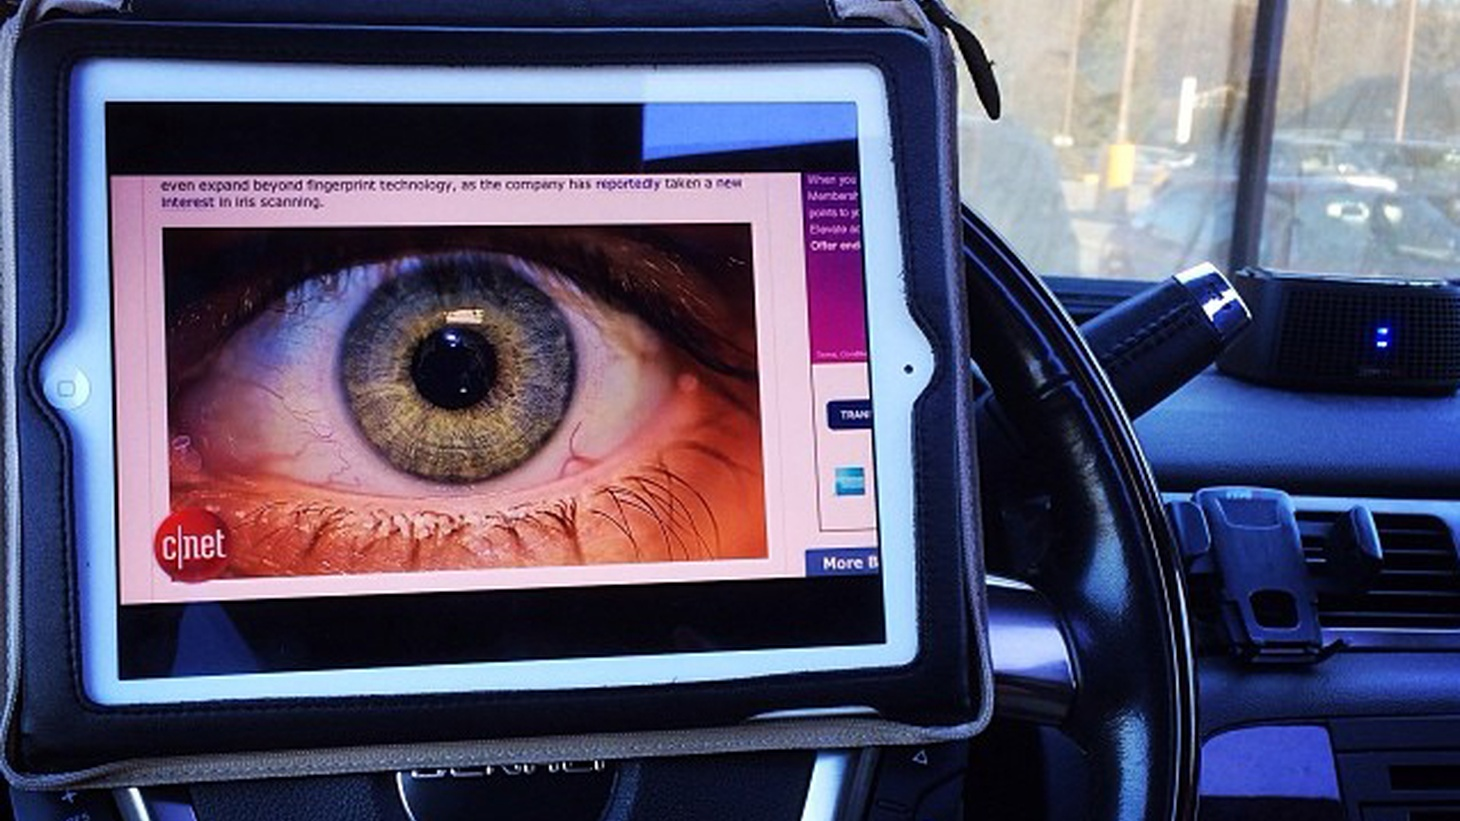 It used to be just your driver's license, then your fingerprint. Now LA Sheriff's deputies are prepared to record your picture, the shape of your eyeball and, possibly, the sound of your voice. Why is there no public debate about the potential invasion of privacy of the most intimate kind?